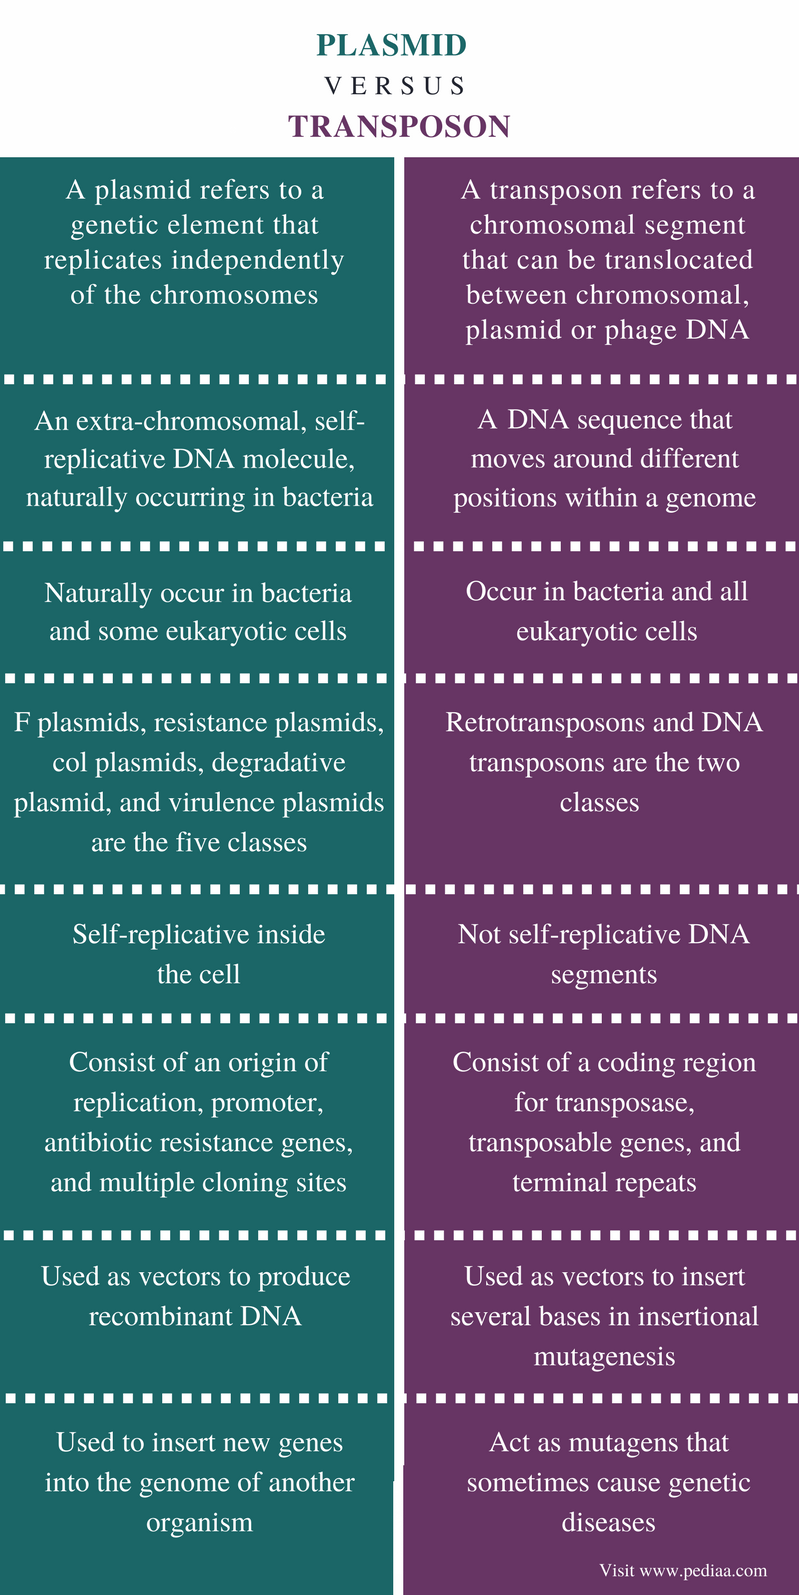 Difference Between Plasmid and Transposon - Comparison Summary